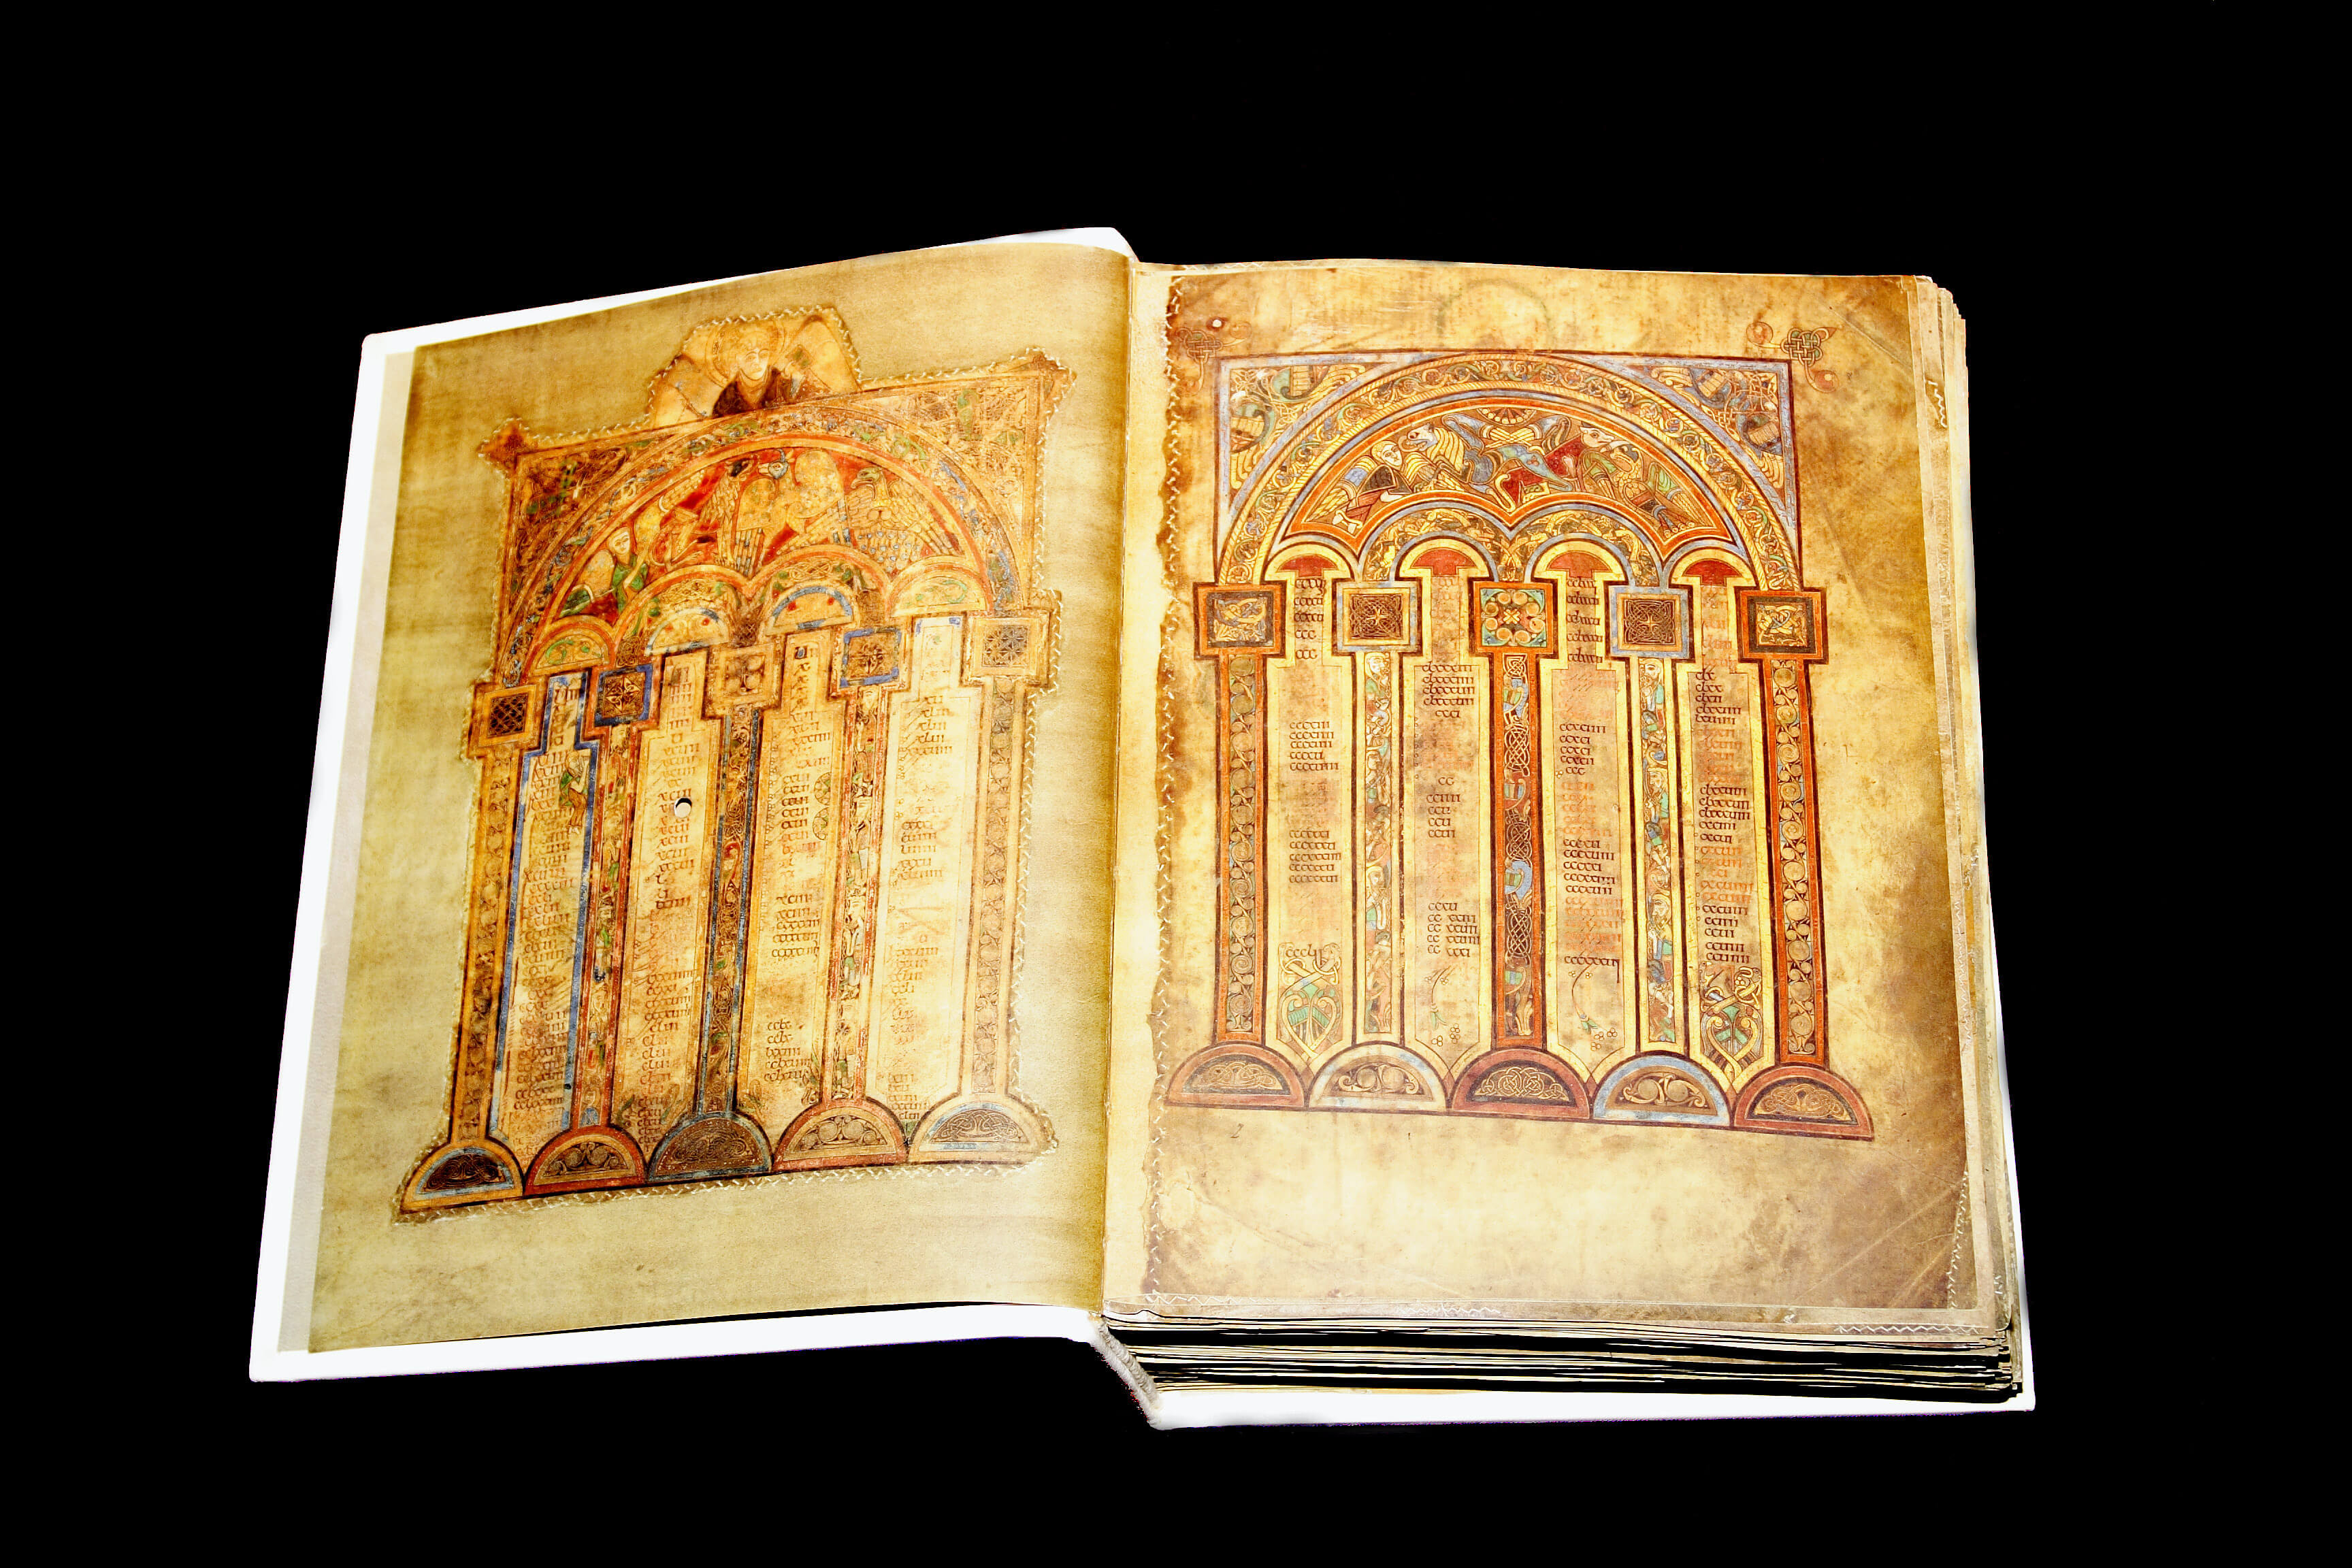 5 Must-See Sights Of Dublin pour Script In The Book Of Kells